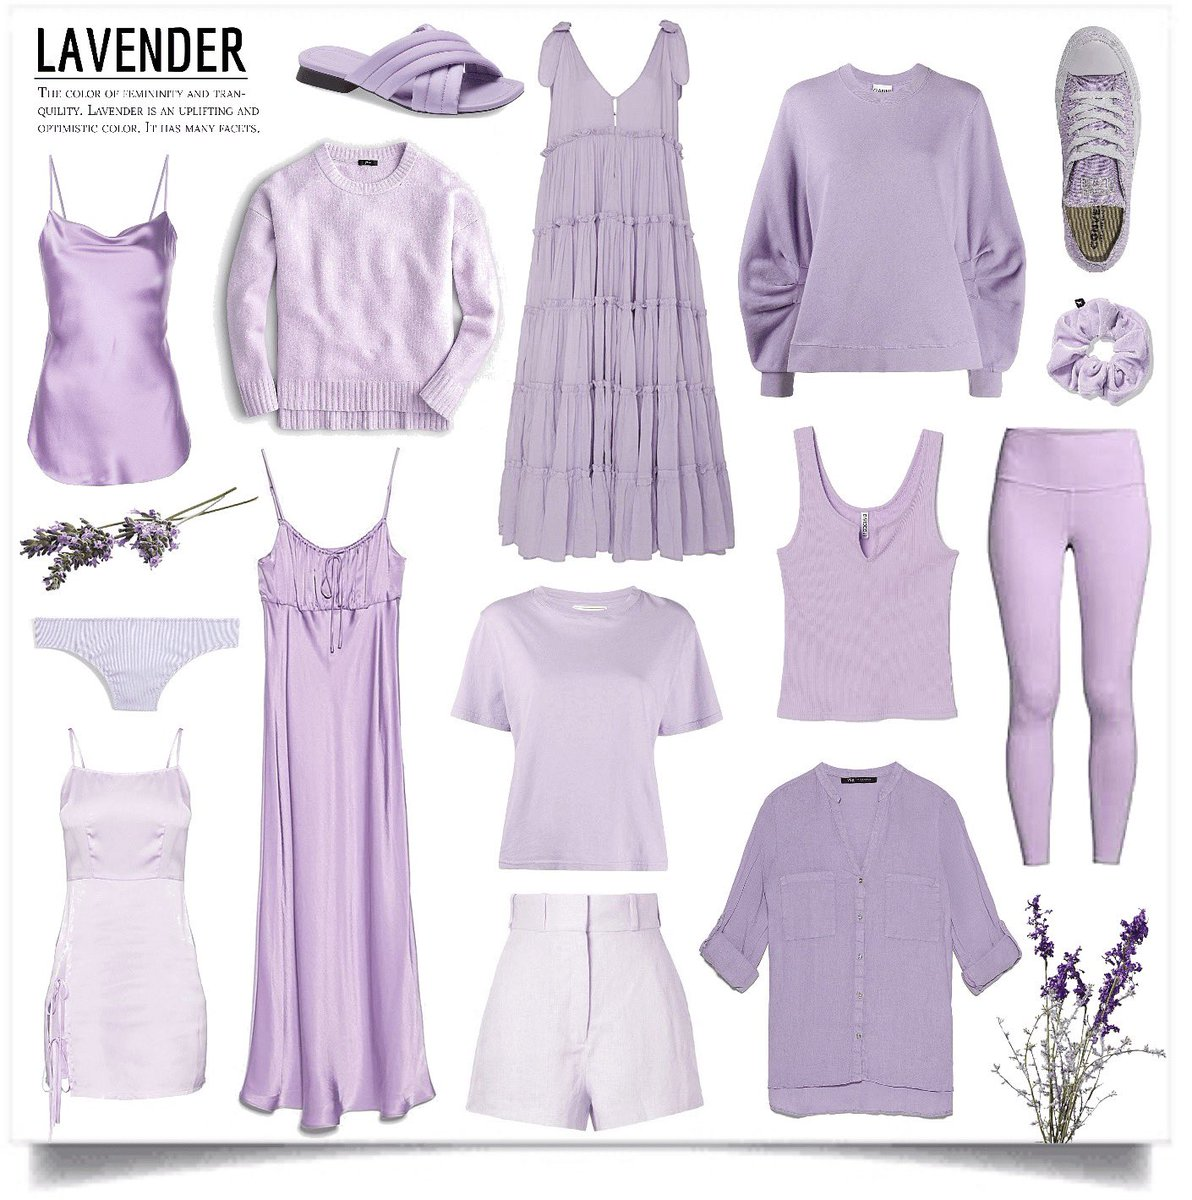 Lavender • #ootd #fashionista #stylegram #stylist #todaysoutfit #lookbook #lookoftheday #beautyblogger #fashionblogger #styleblogger #outfitideas #outfits #influencer #outfitoftheday #newcontent #shoplookio #thestyledstories #vsco #lavender #summer #summeroutfit #softgirl